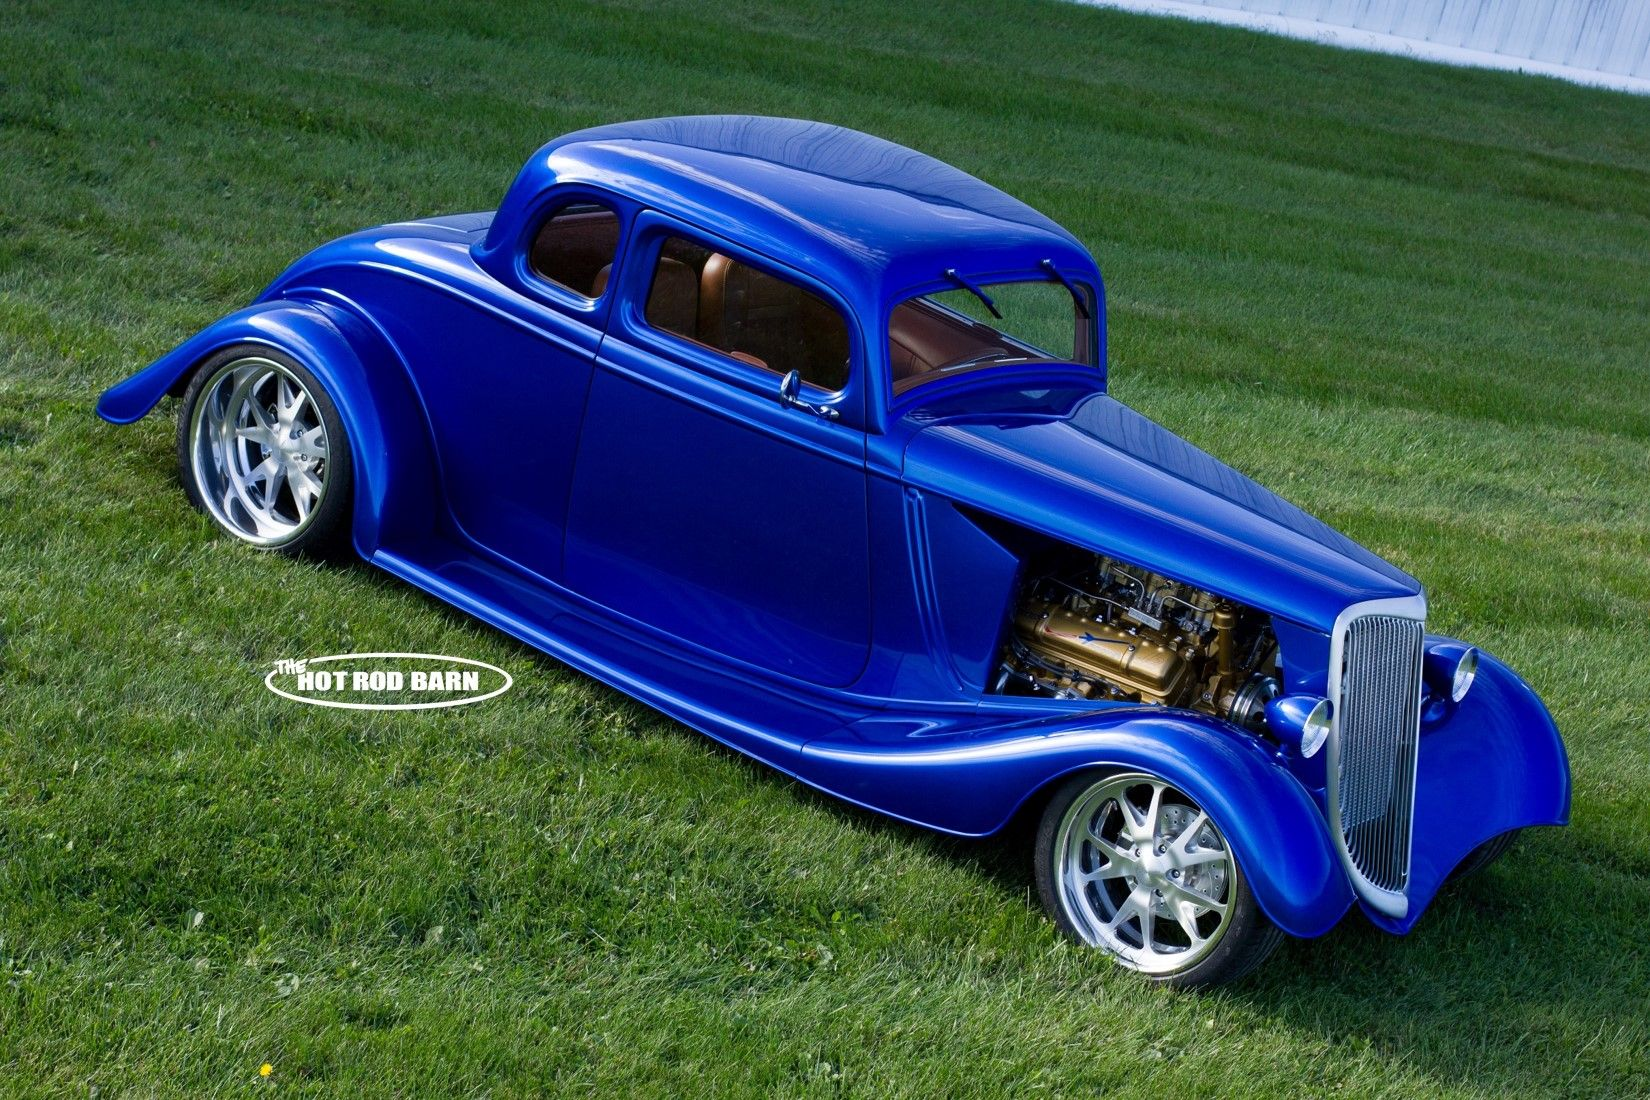 1934 Ford steel 5W fuel injected. Built at The Hot Rod